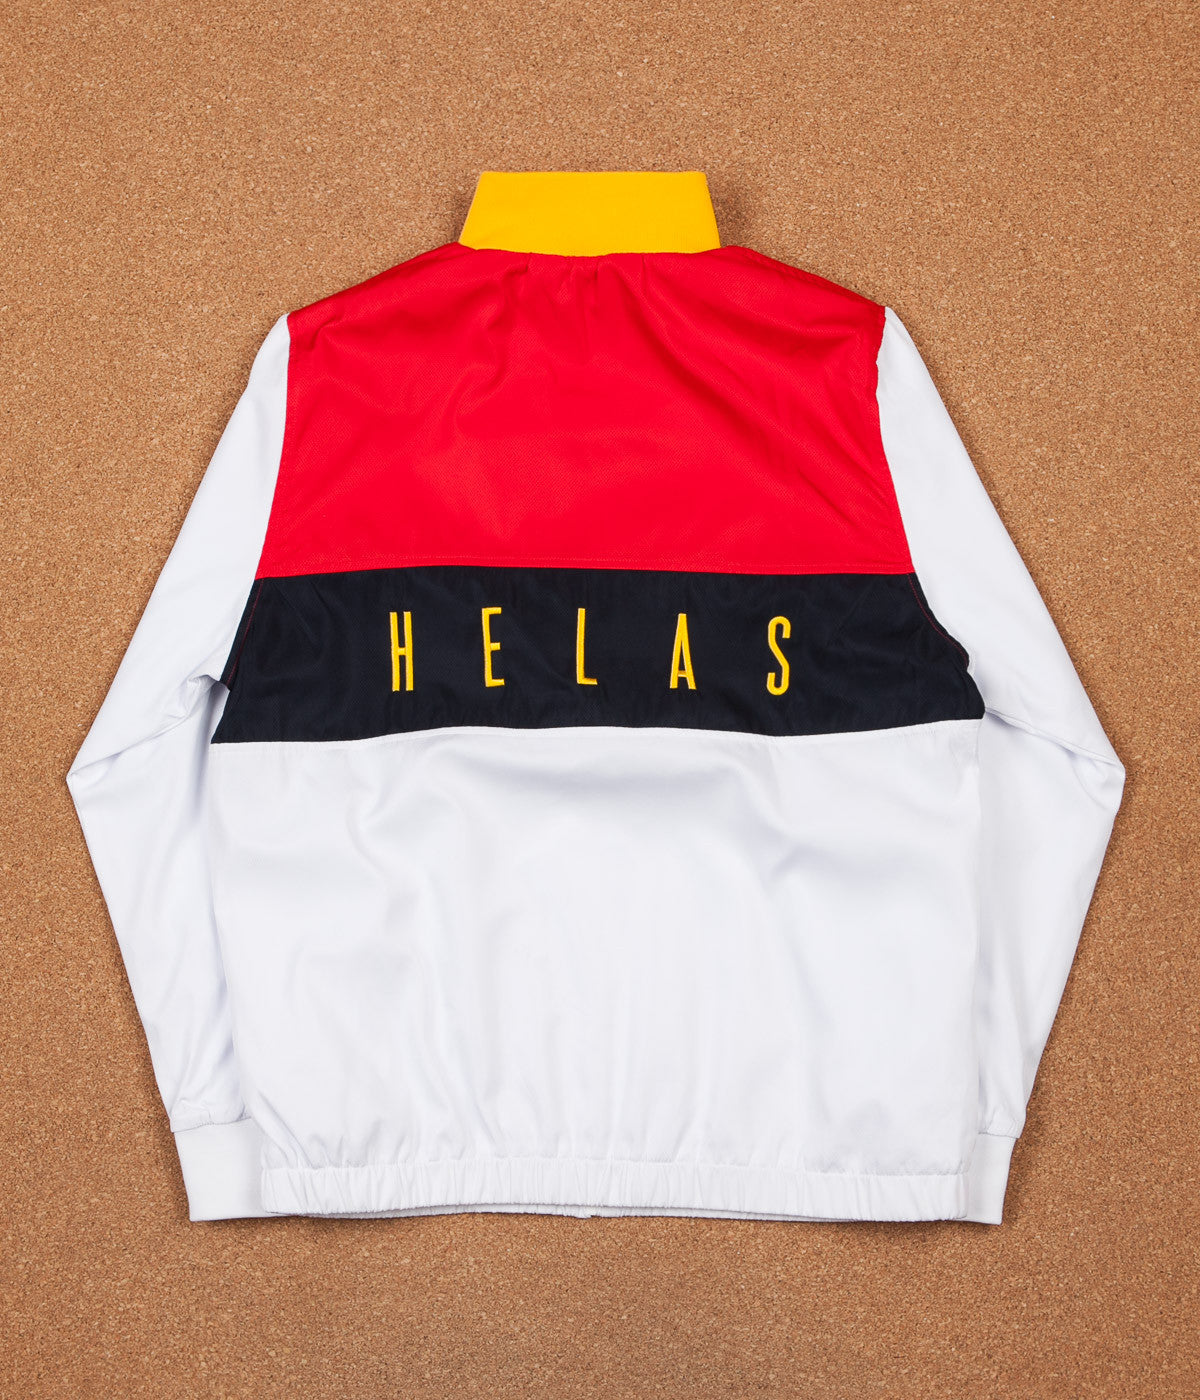 Helas Foquinha Tracksuit Jacket - White / Red / Black